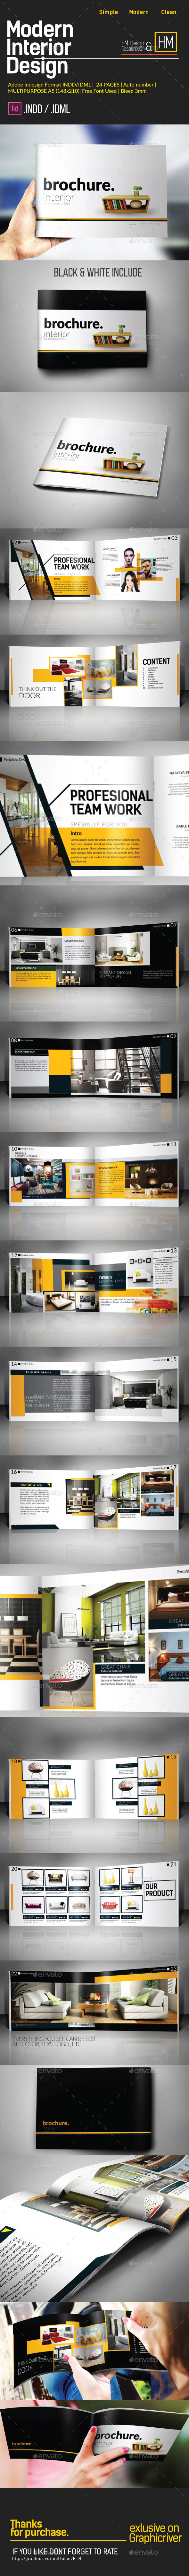 MODERN INTERIOR CATALOG OR PORTOFOLIO DESIGN